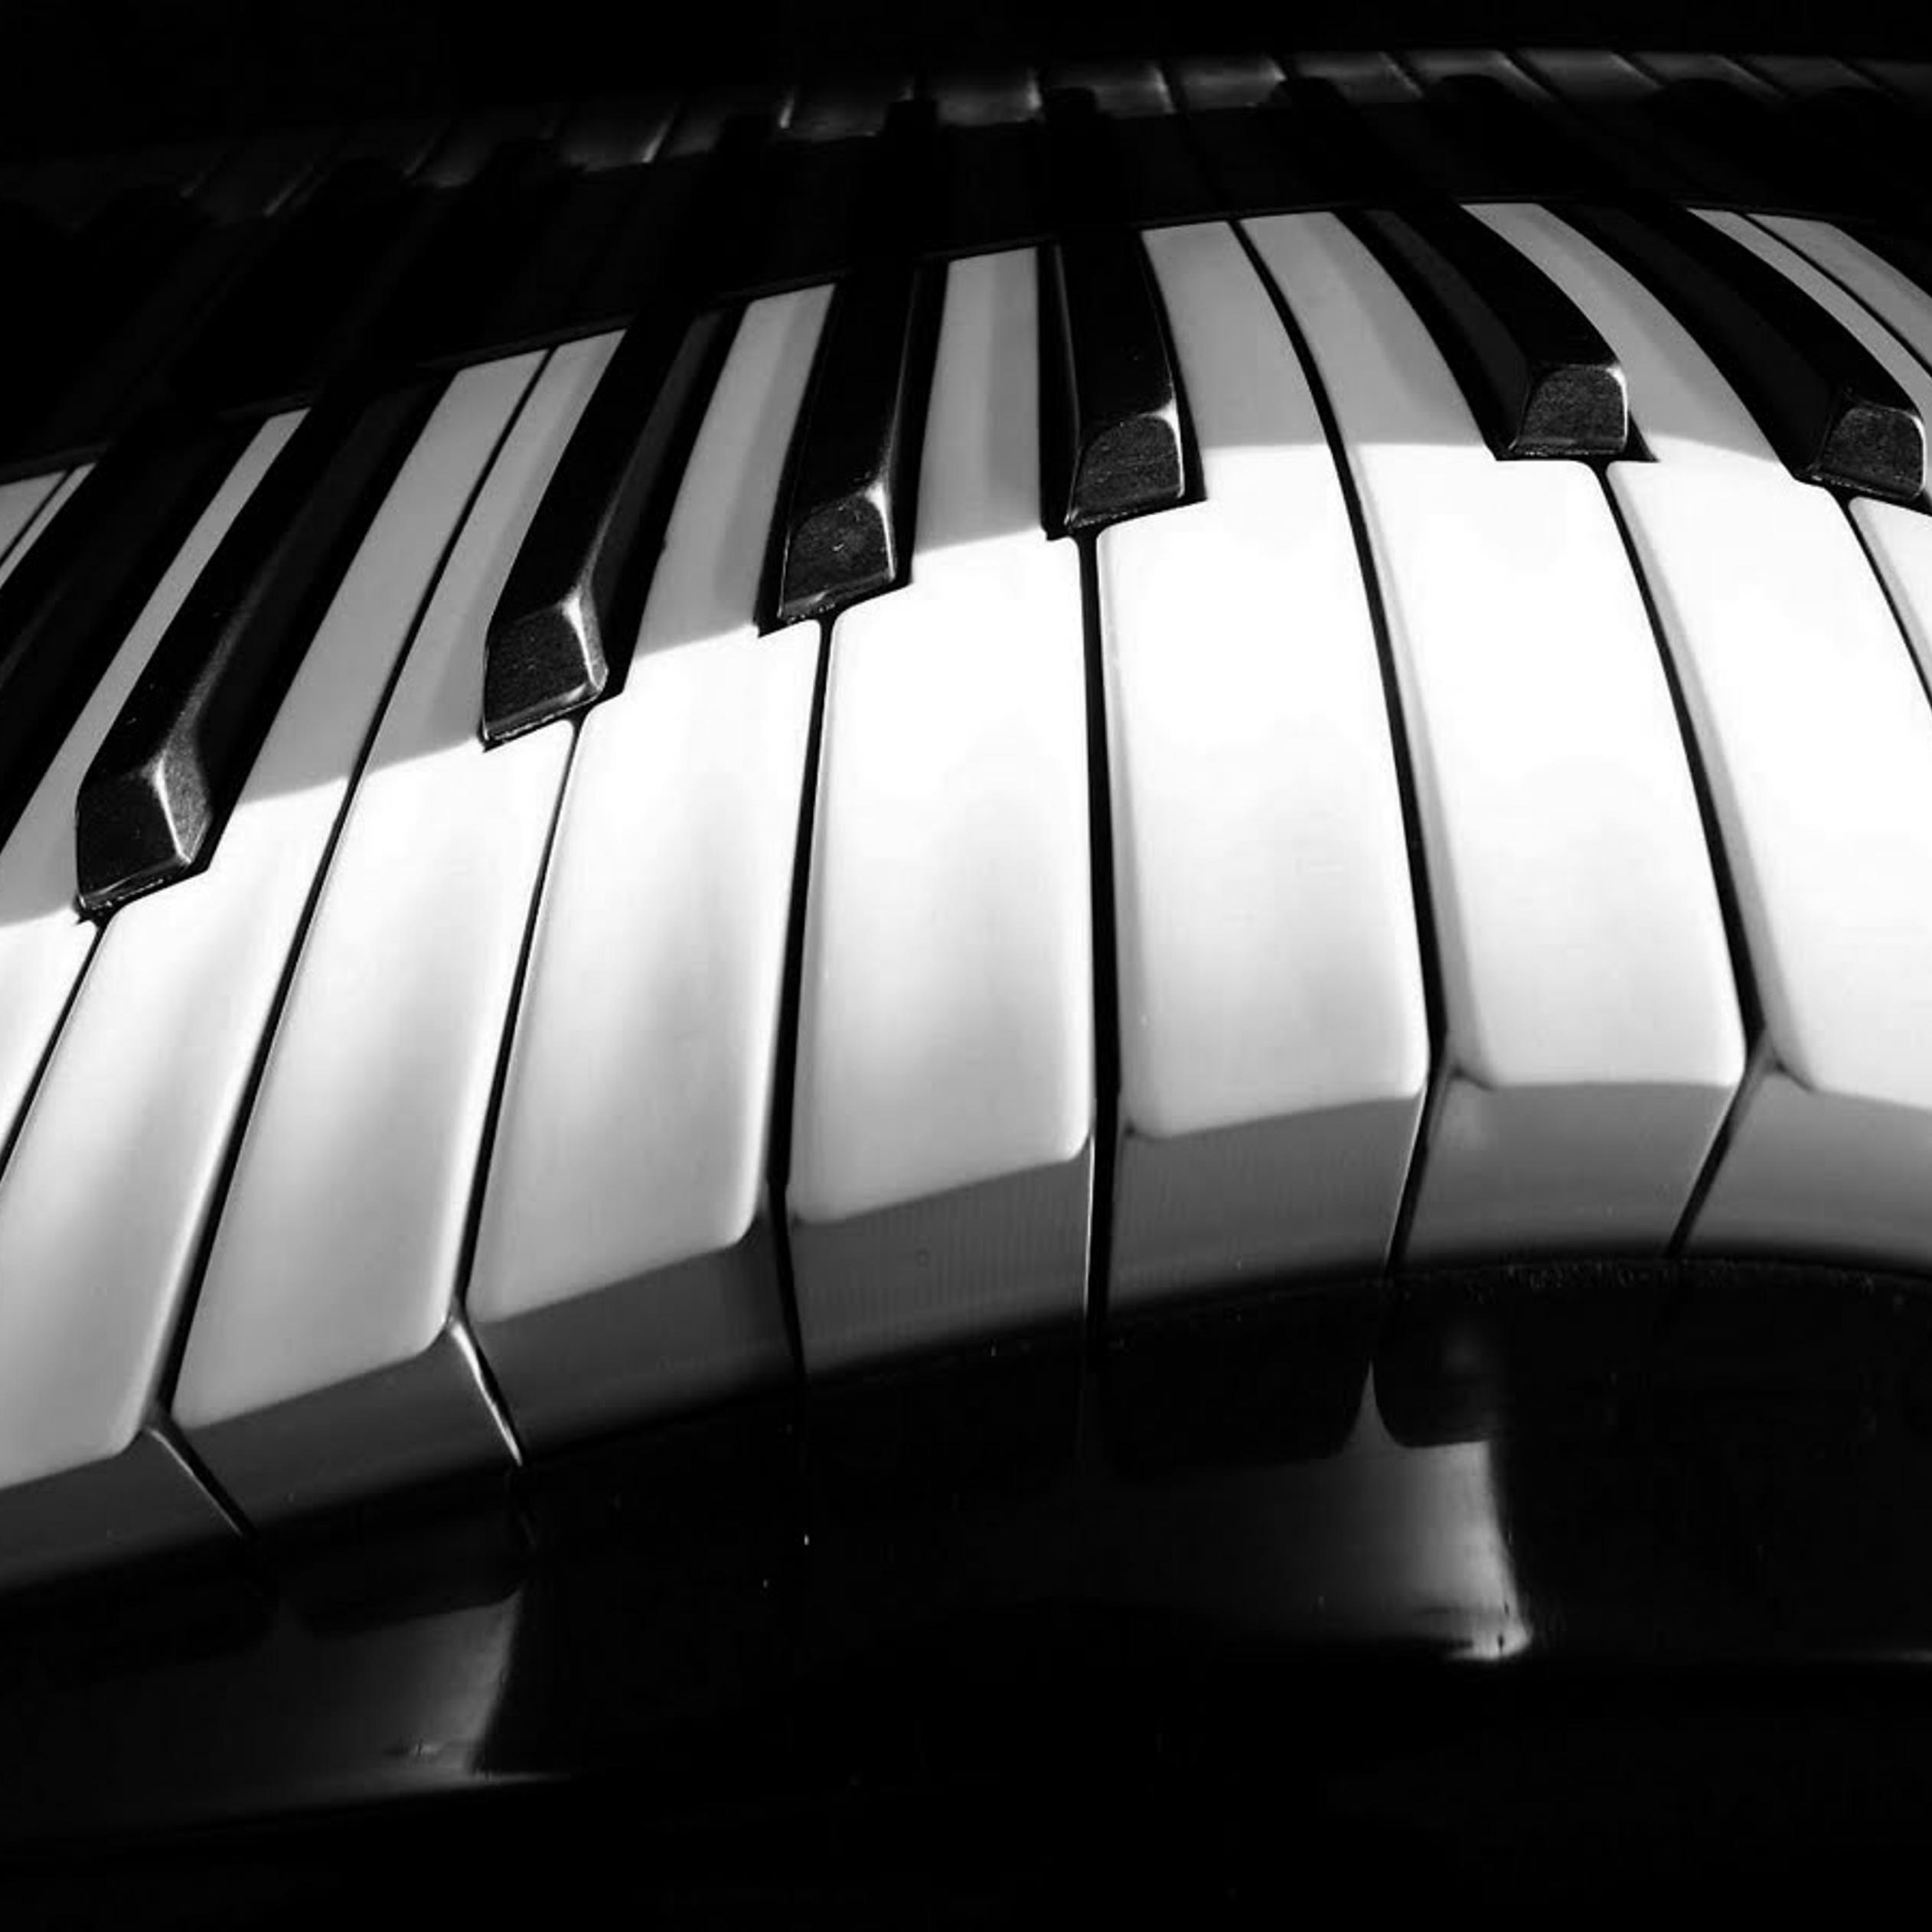 A Curved Piano White And Black Hd Wallpaper